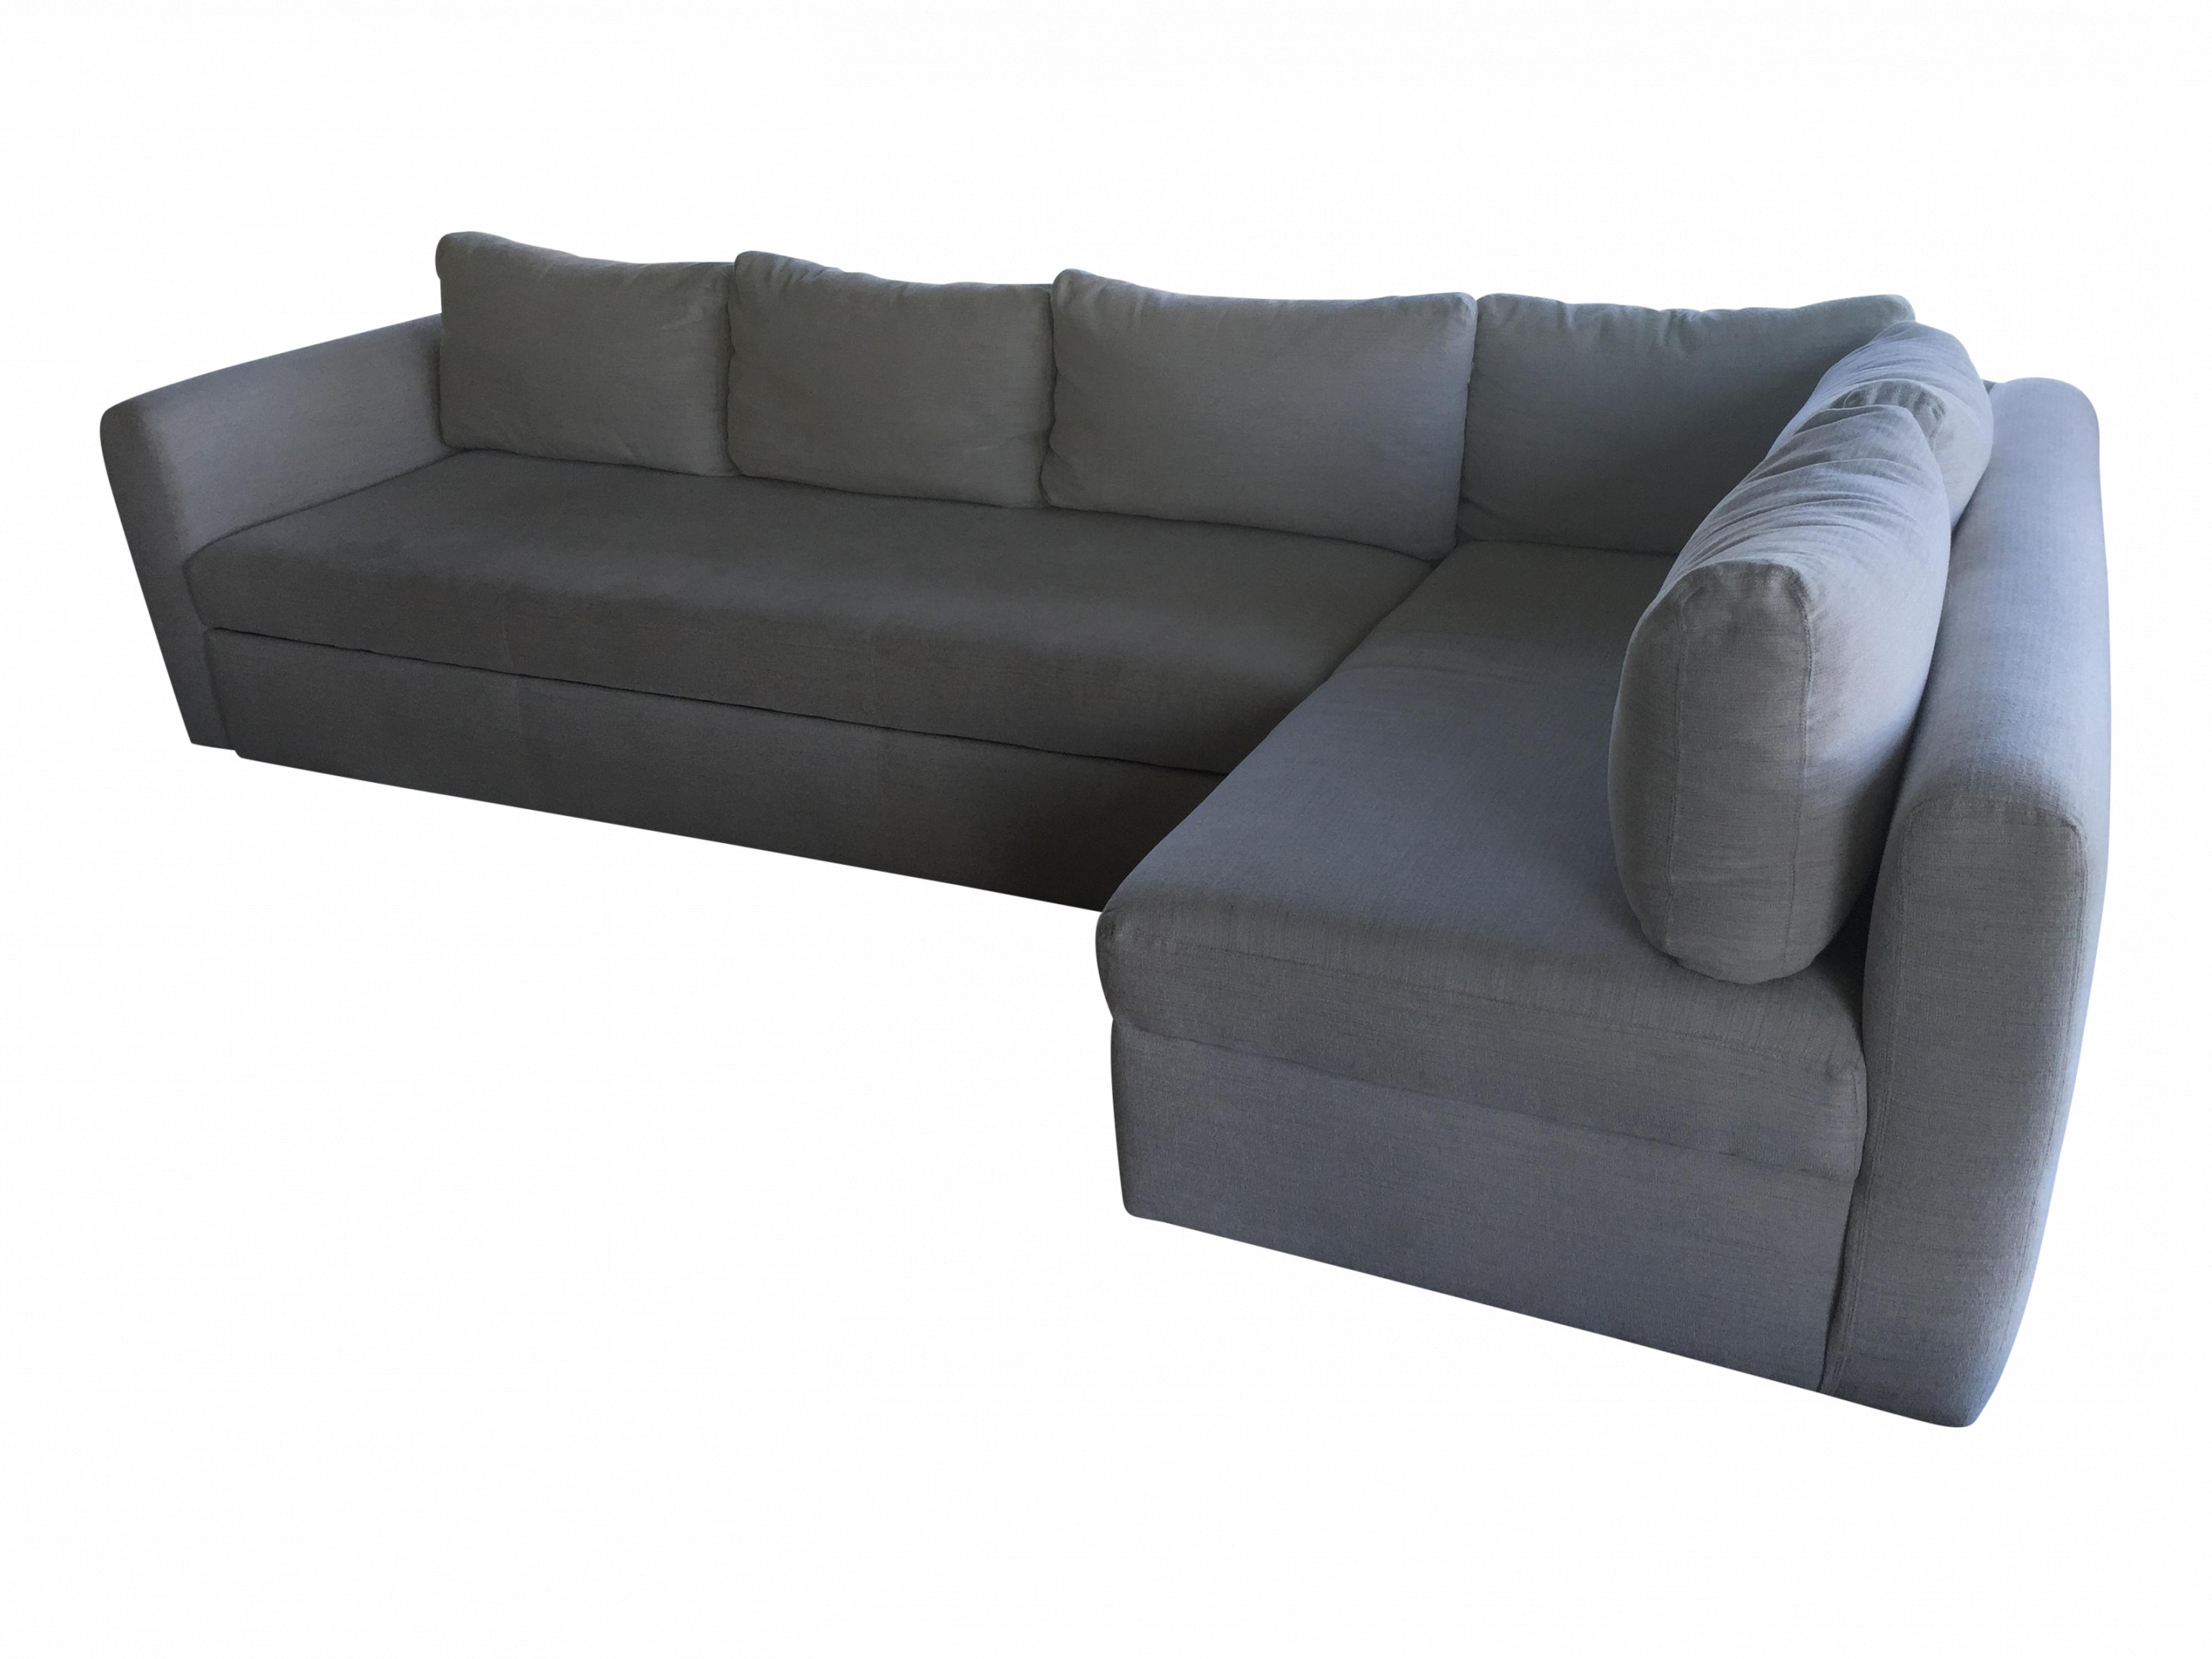 Room And Board Sectional Sofas With Regard To Famous Room And Board Sectional Sofa Sleeper Sale Review Eden Stock (View 12 of 15)